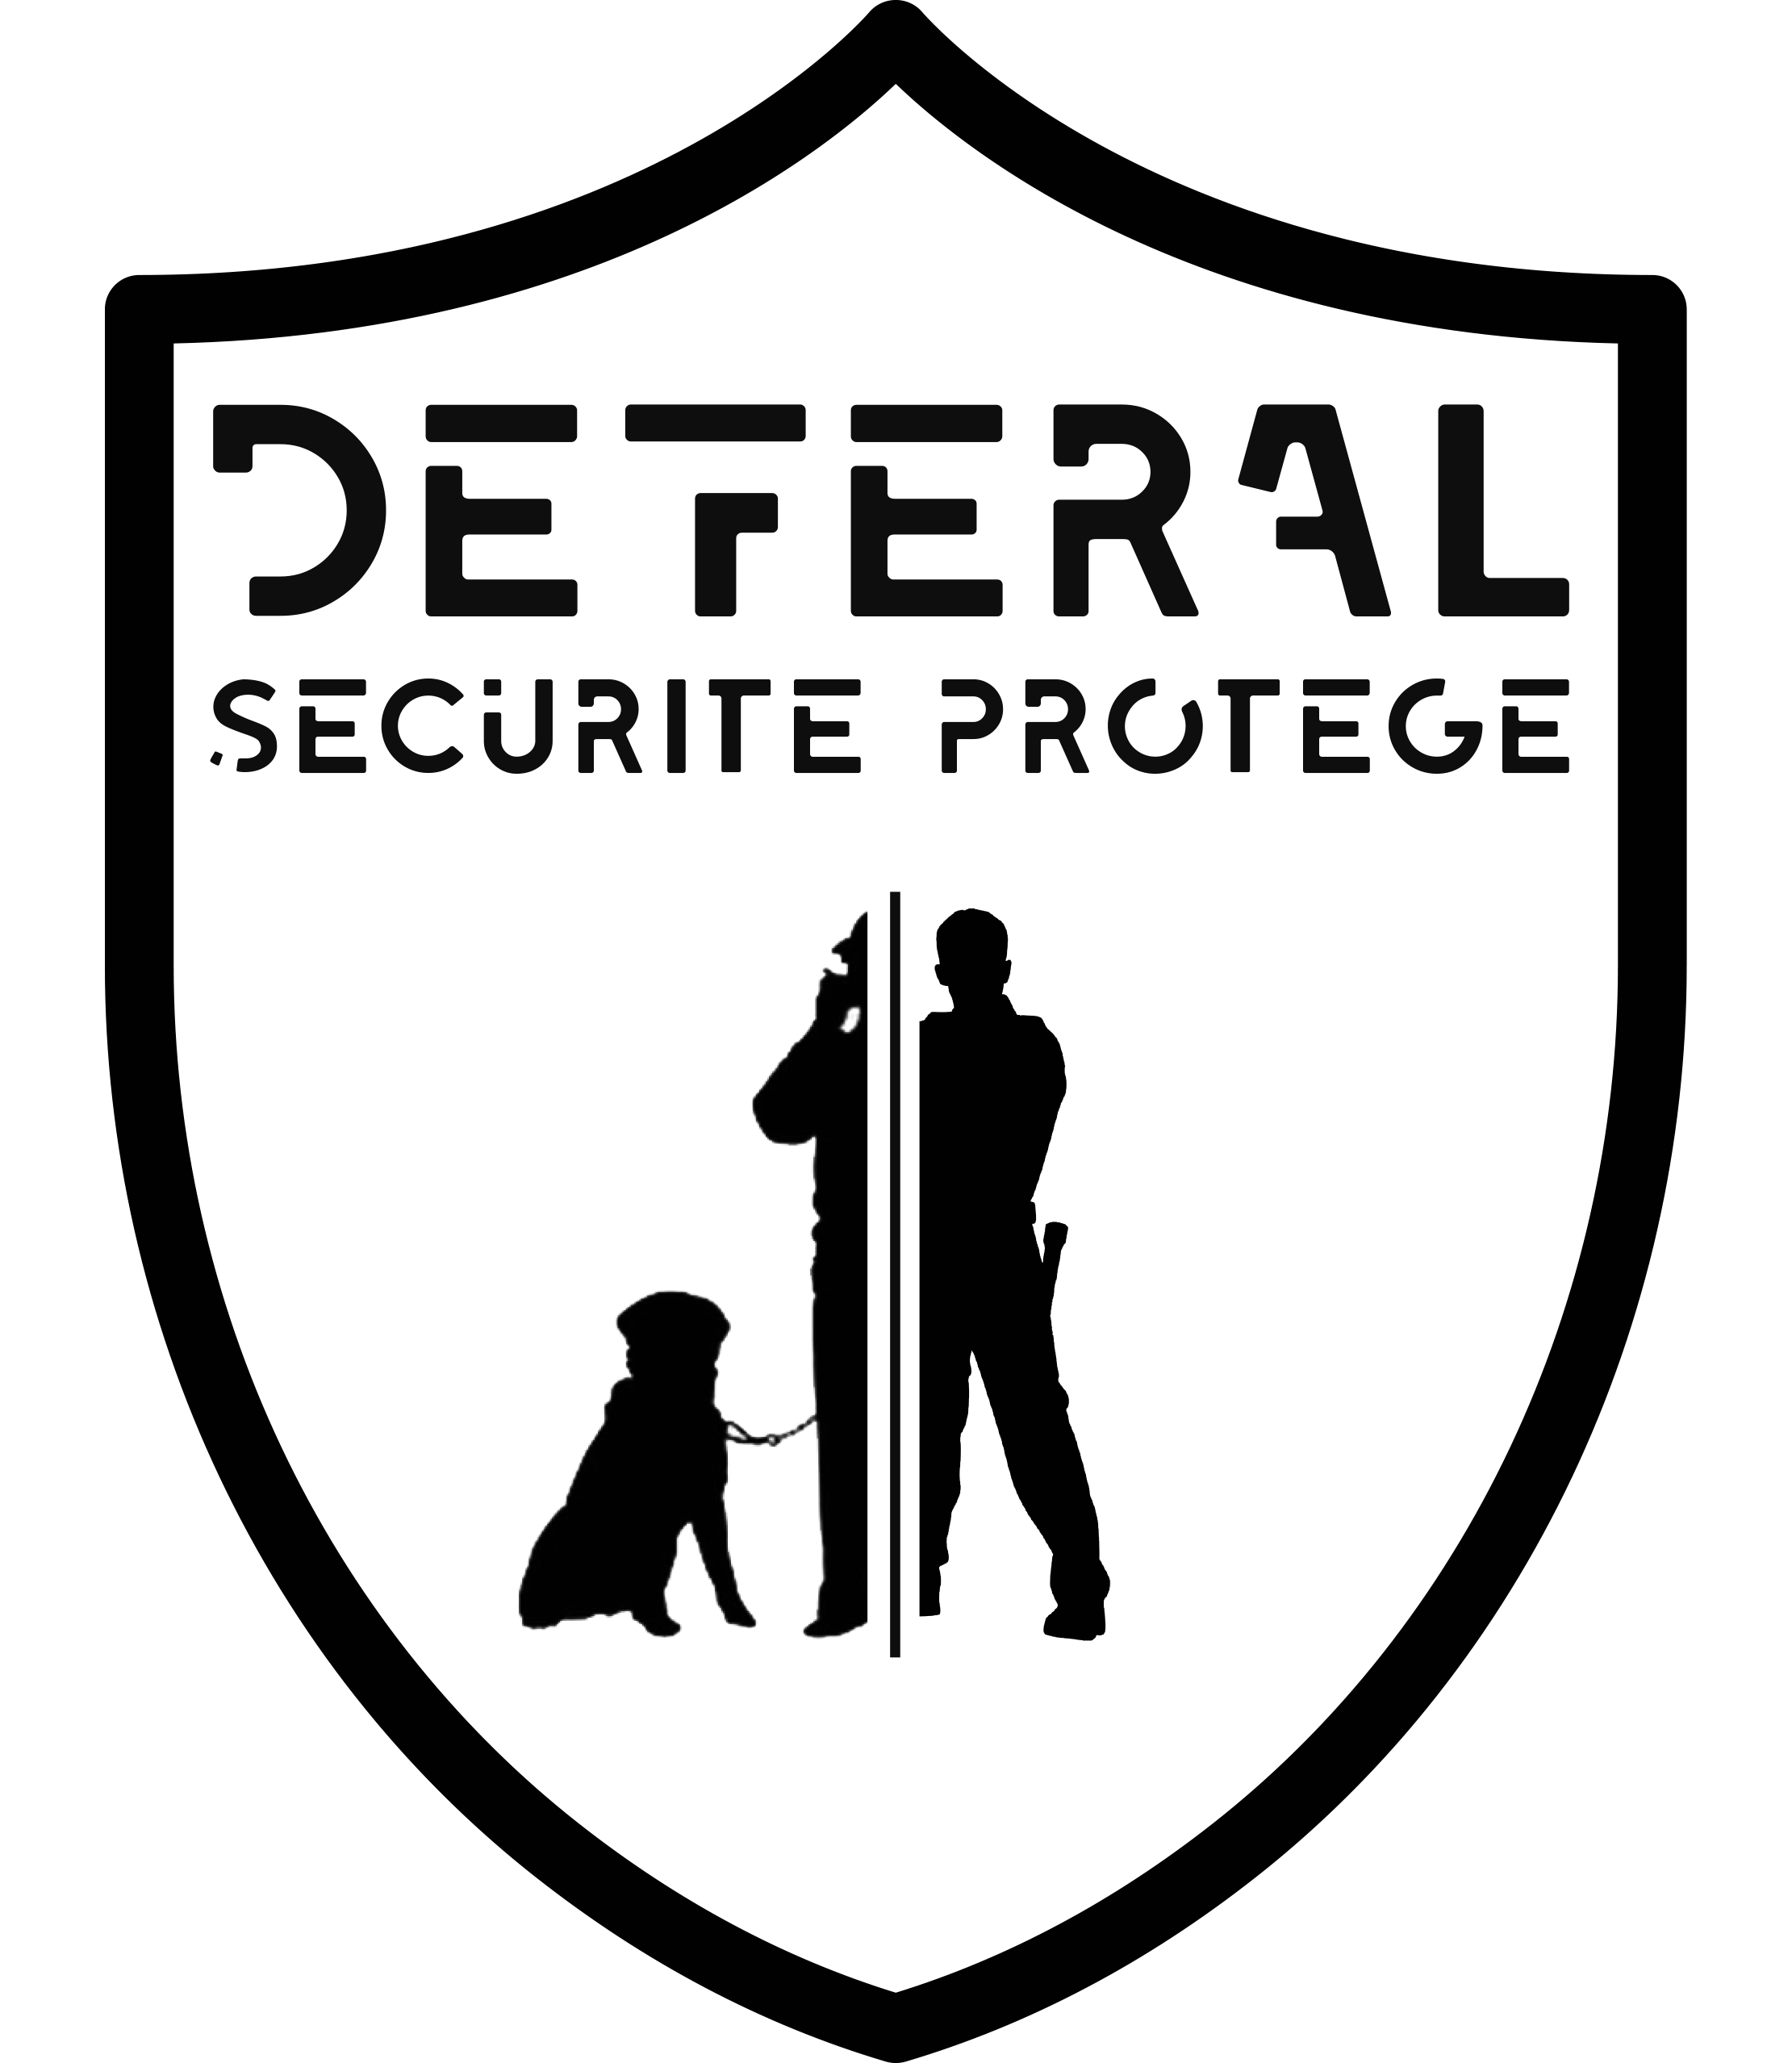 Deferal Securite Protege